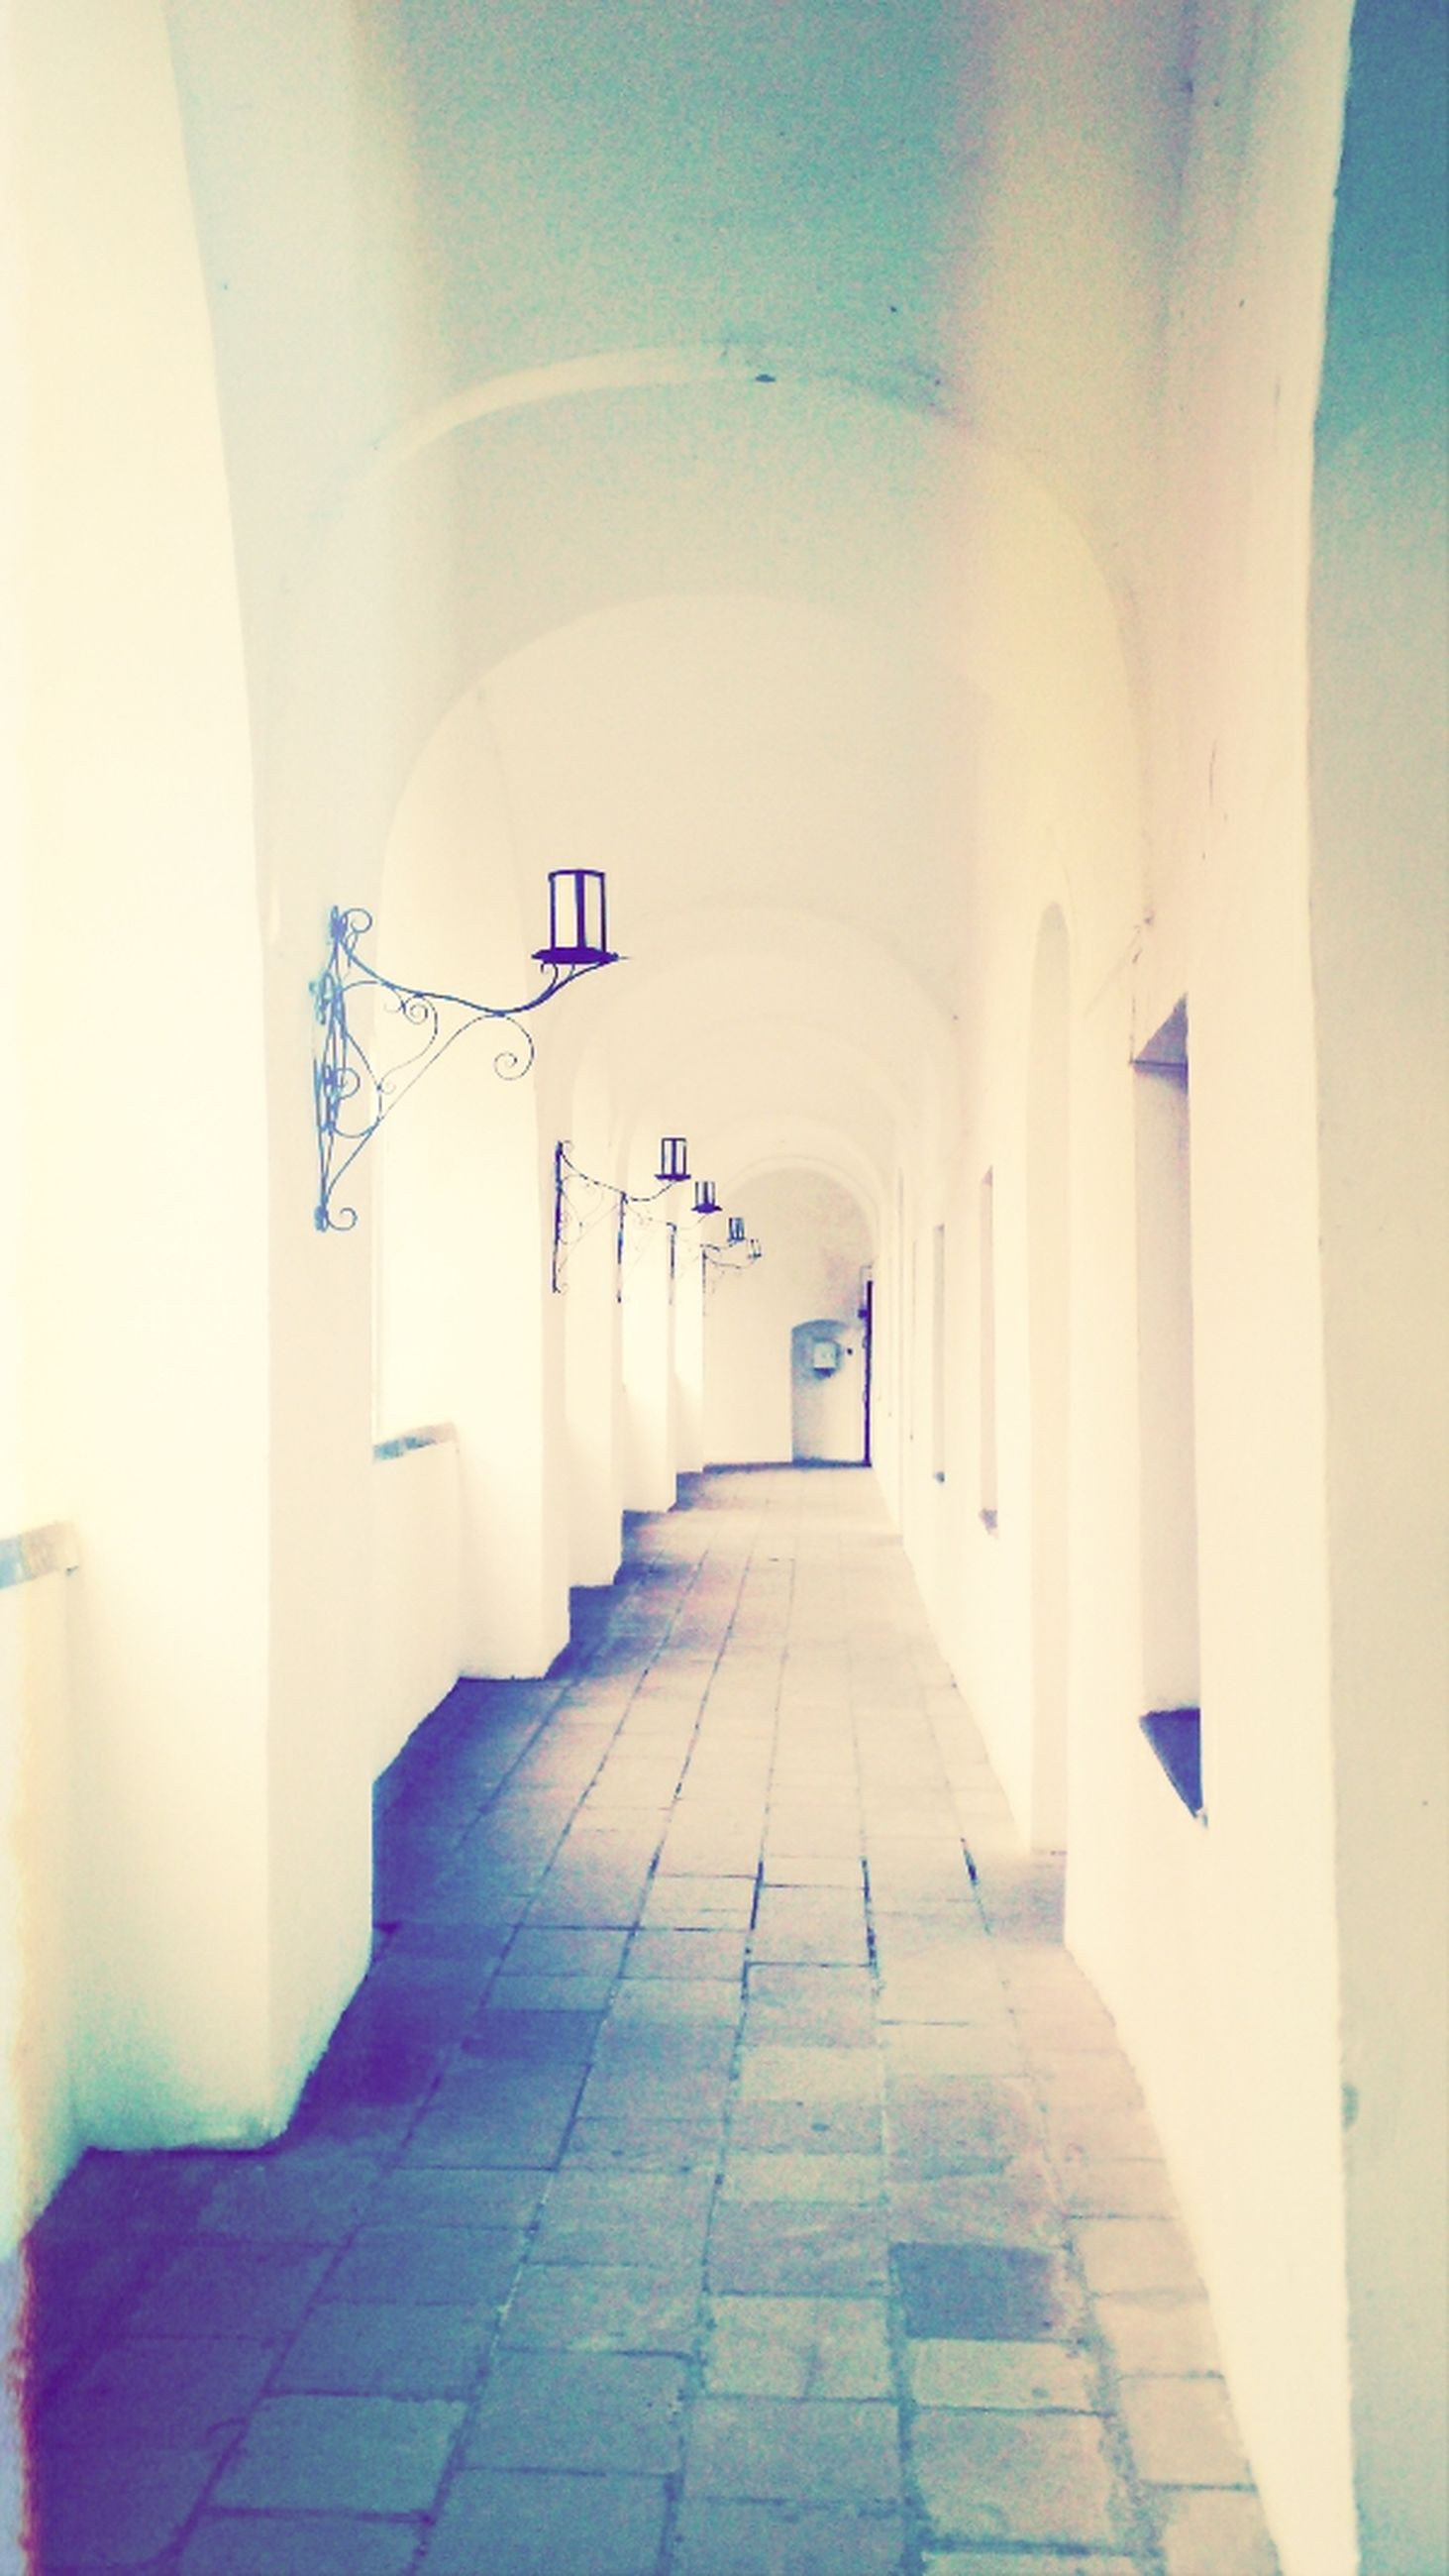 the way forward, architecture, built structure, indoors, diminishing perspective, corridor, arch, vanishing point, tiled floor, building, ceiling, empty, sunlight, wall - building feature, architectural column, in a row, day, building exterior, walkway, no people